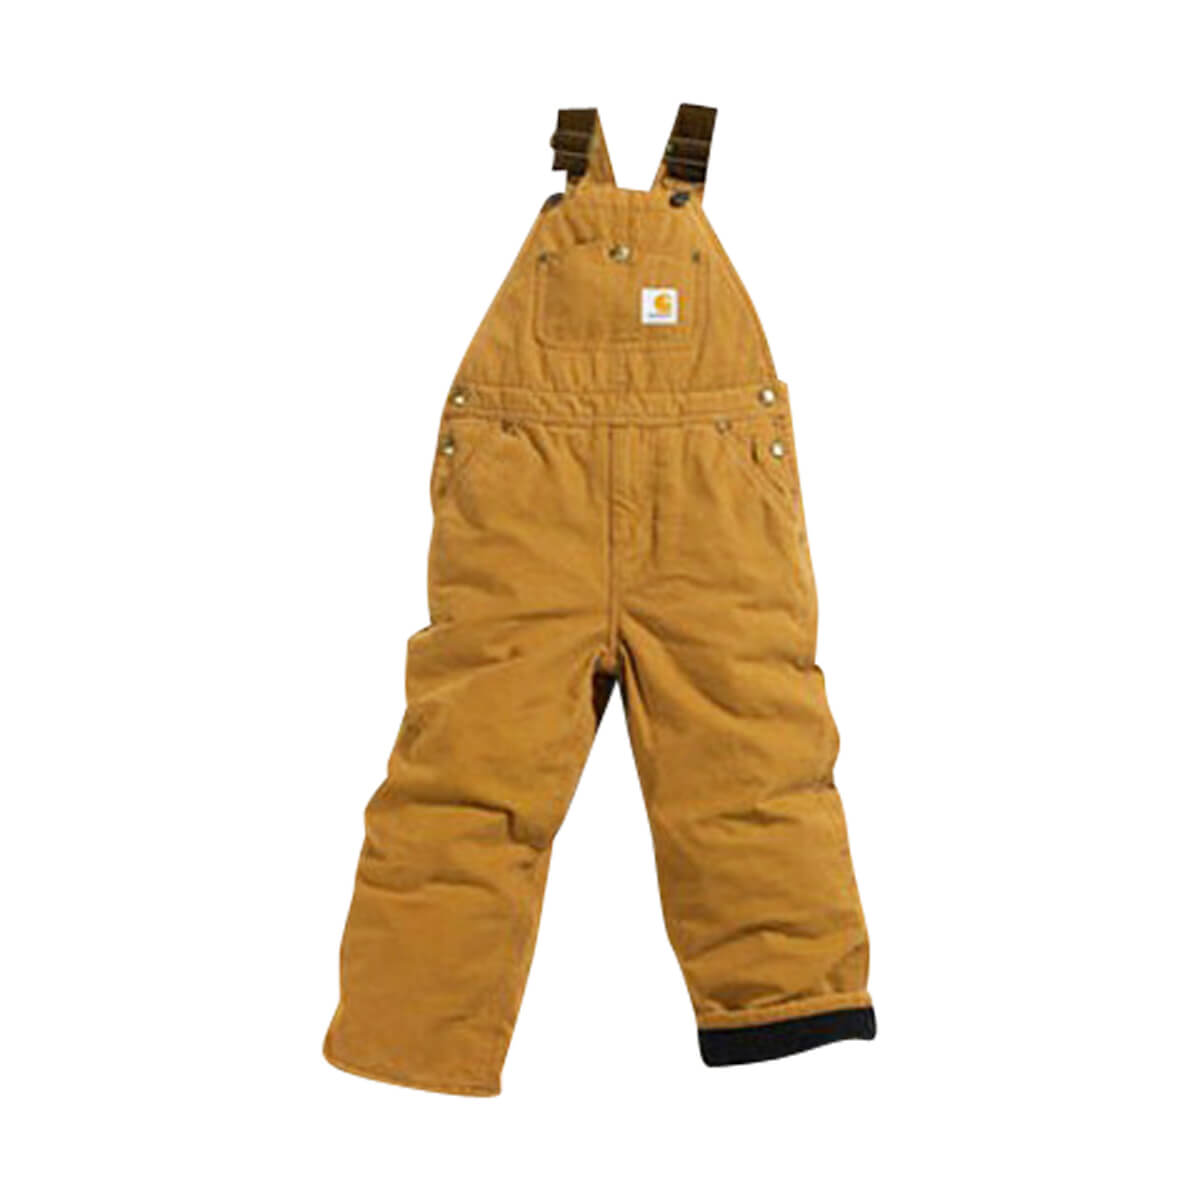 Carhartt Children's Lined Insulated Bib Overall